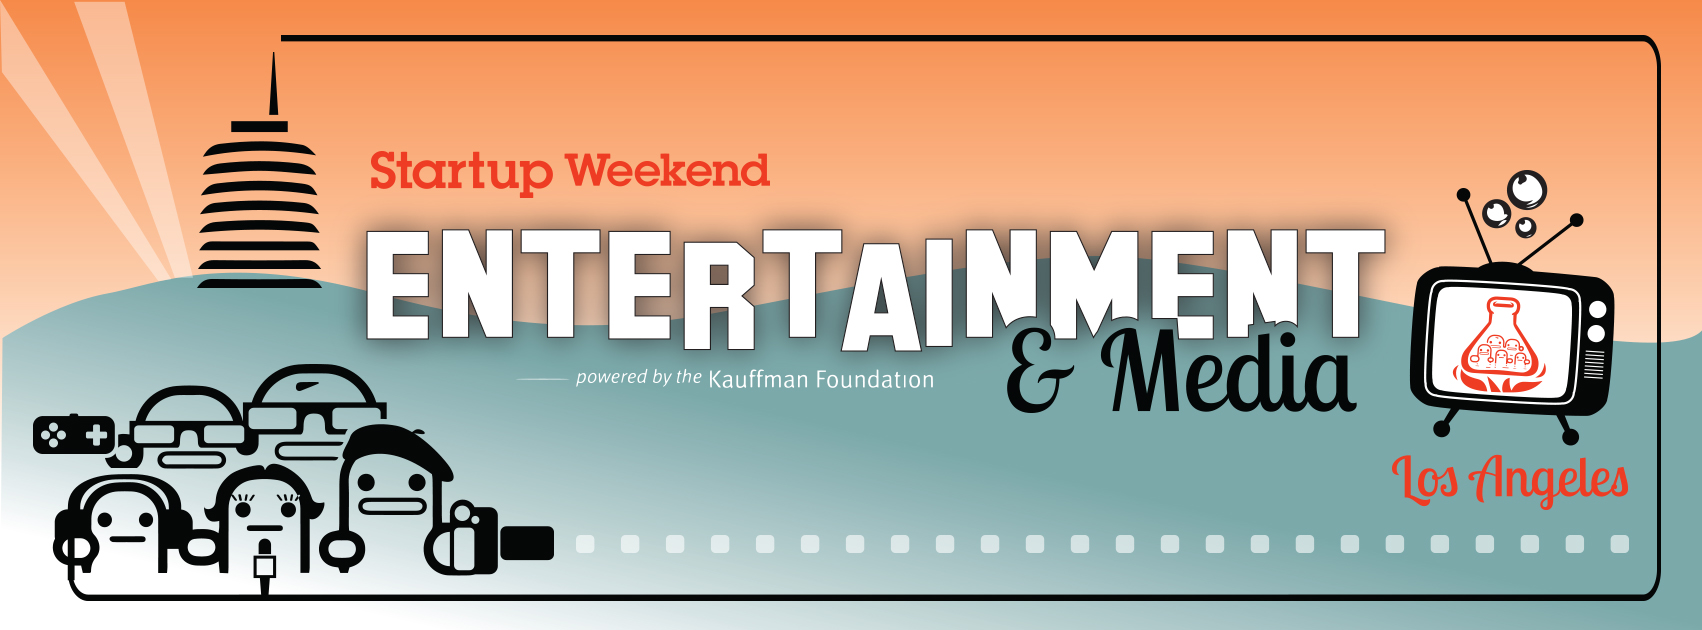 Entertainment and Media Startup Weekend 5